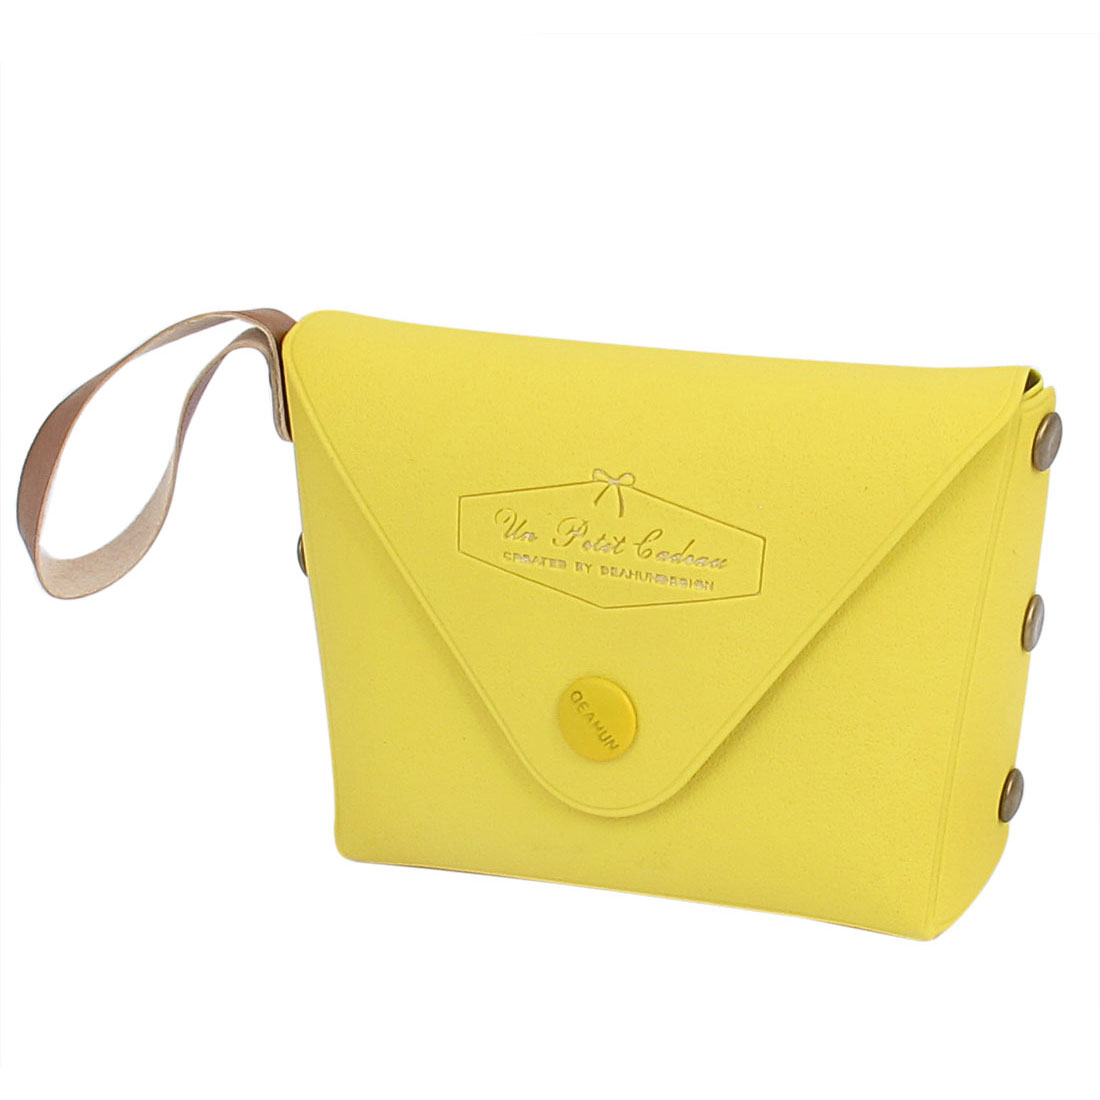 "3.7"" Length Yellow Faux Leather Metal Cute Mini Single Compartment Portable Change Coin Purse Cash Key for Kids Ladies"